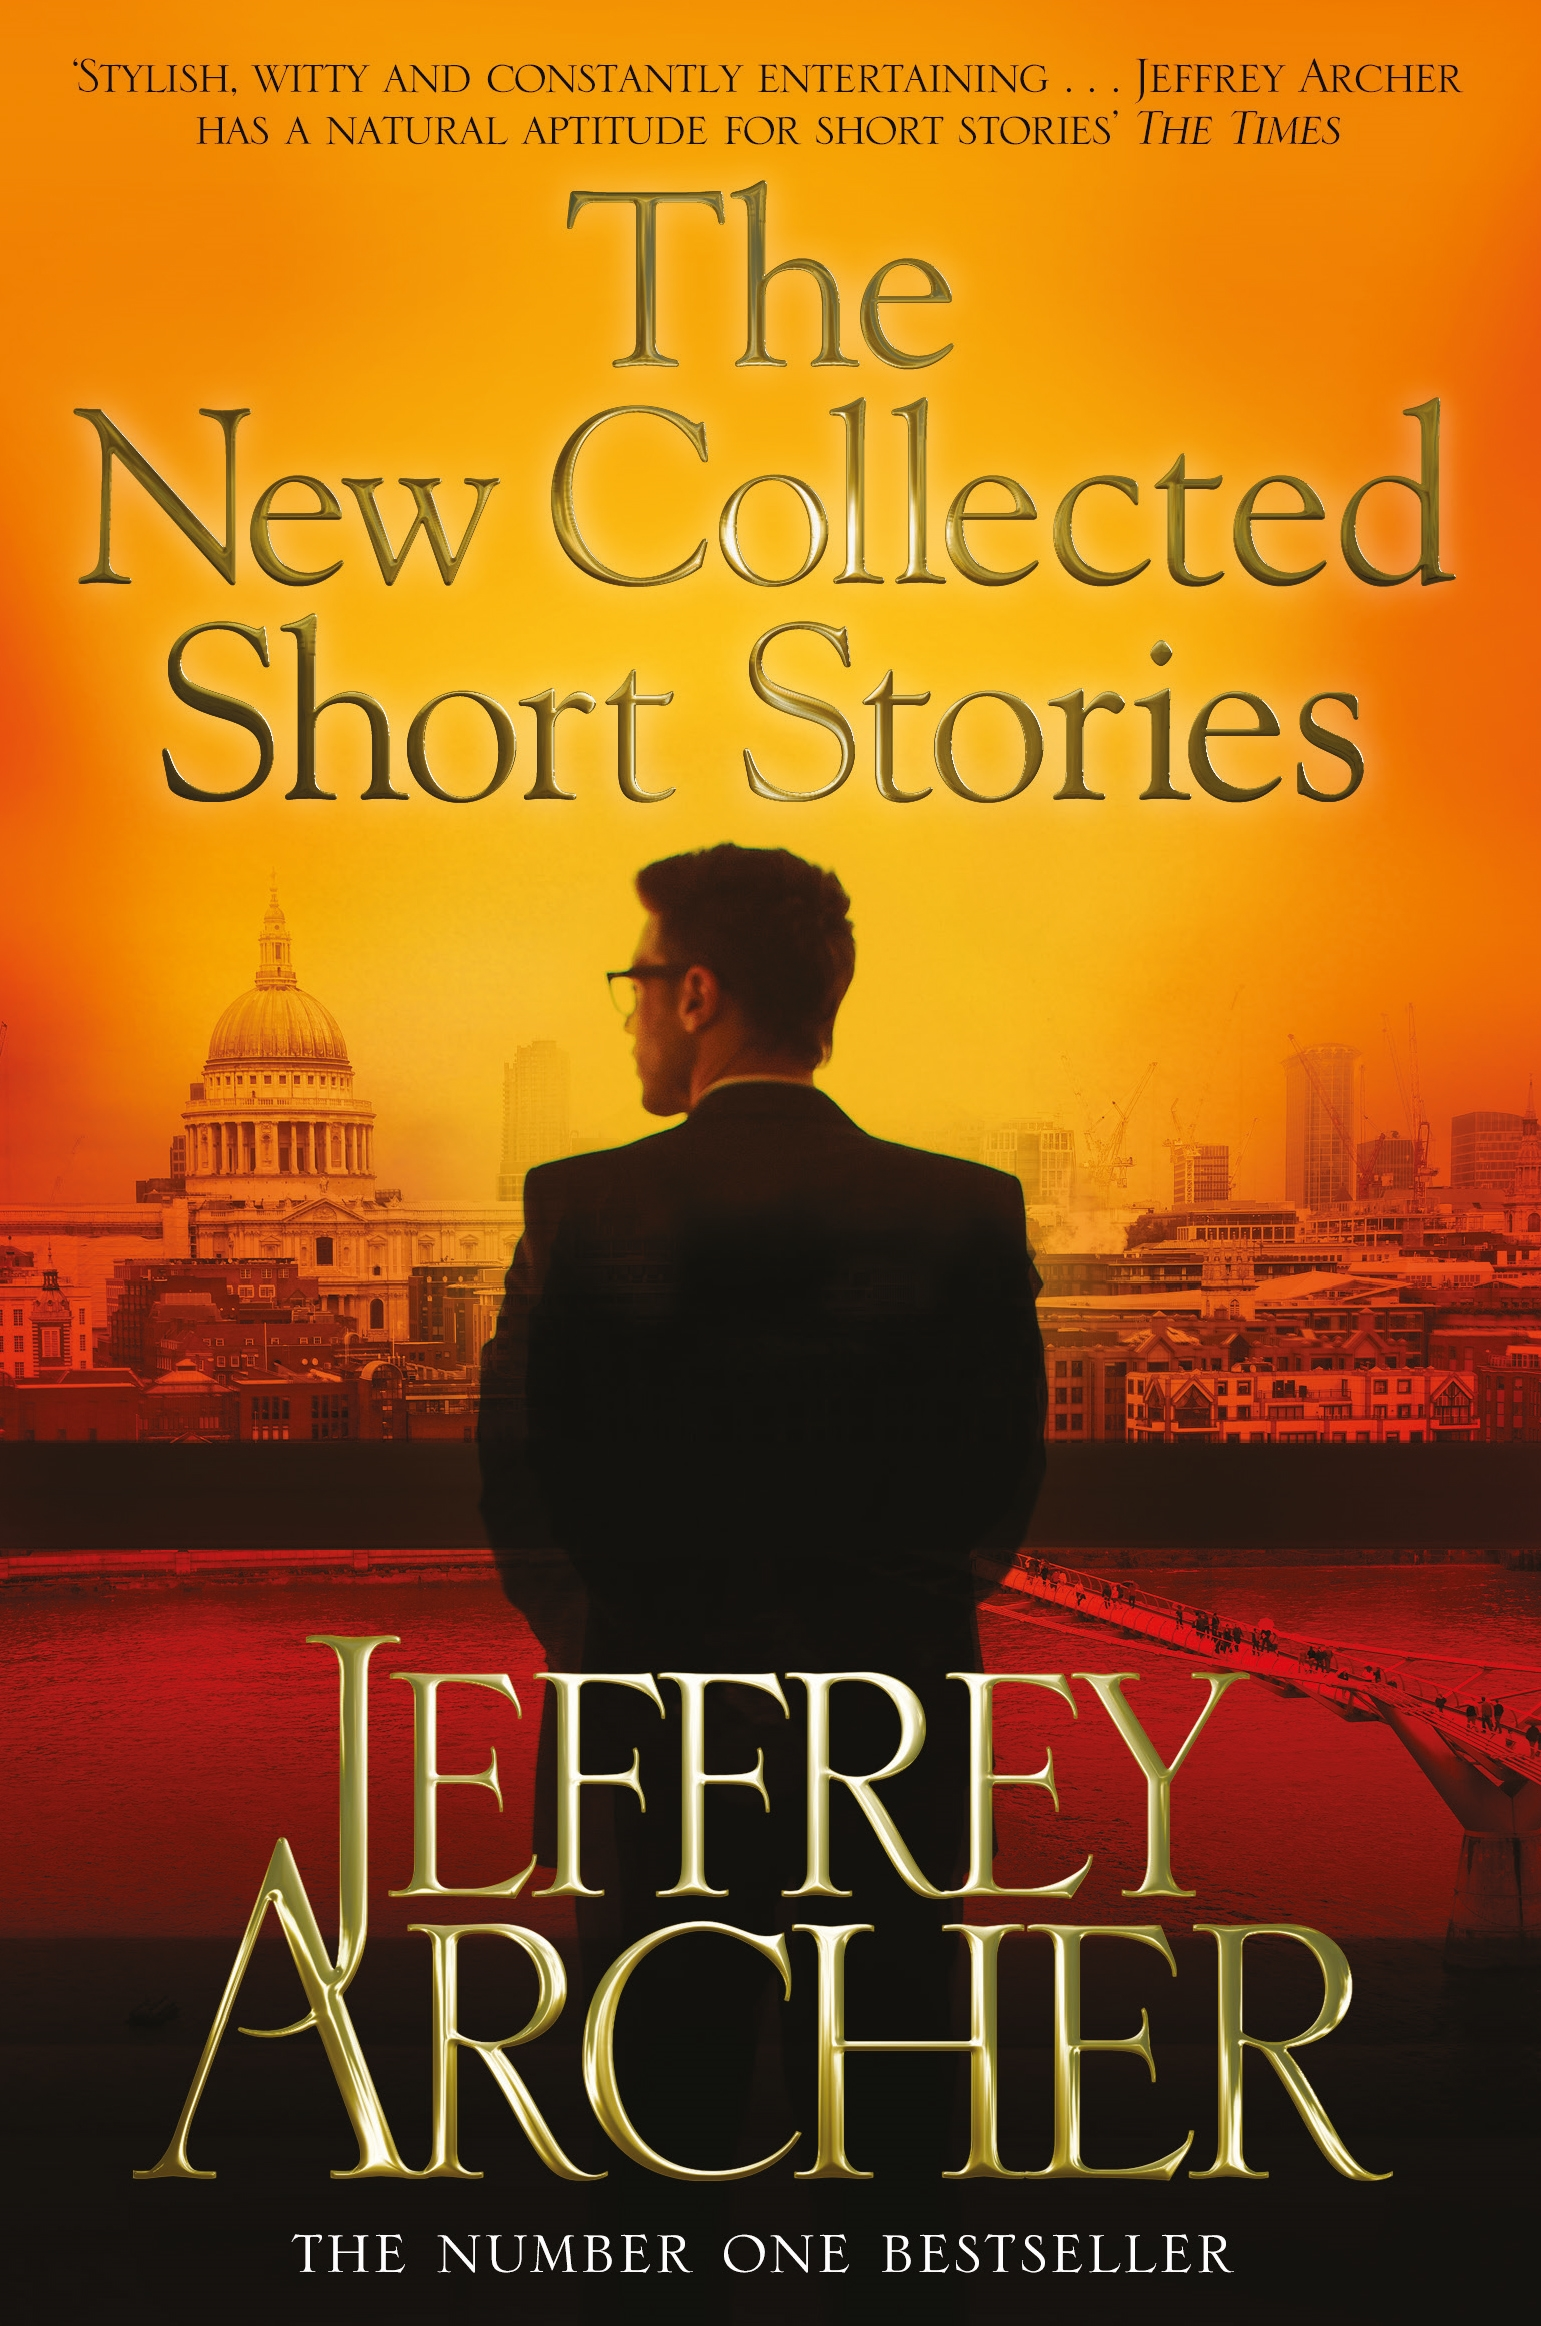 The New Collected Short Stories collected stories